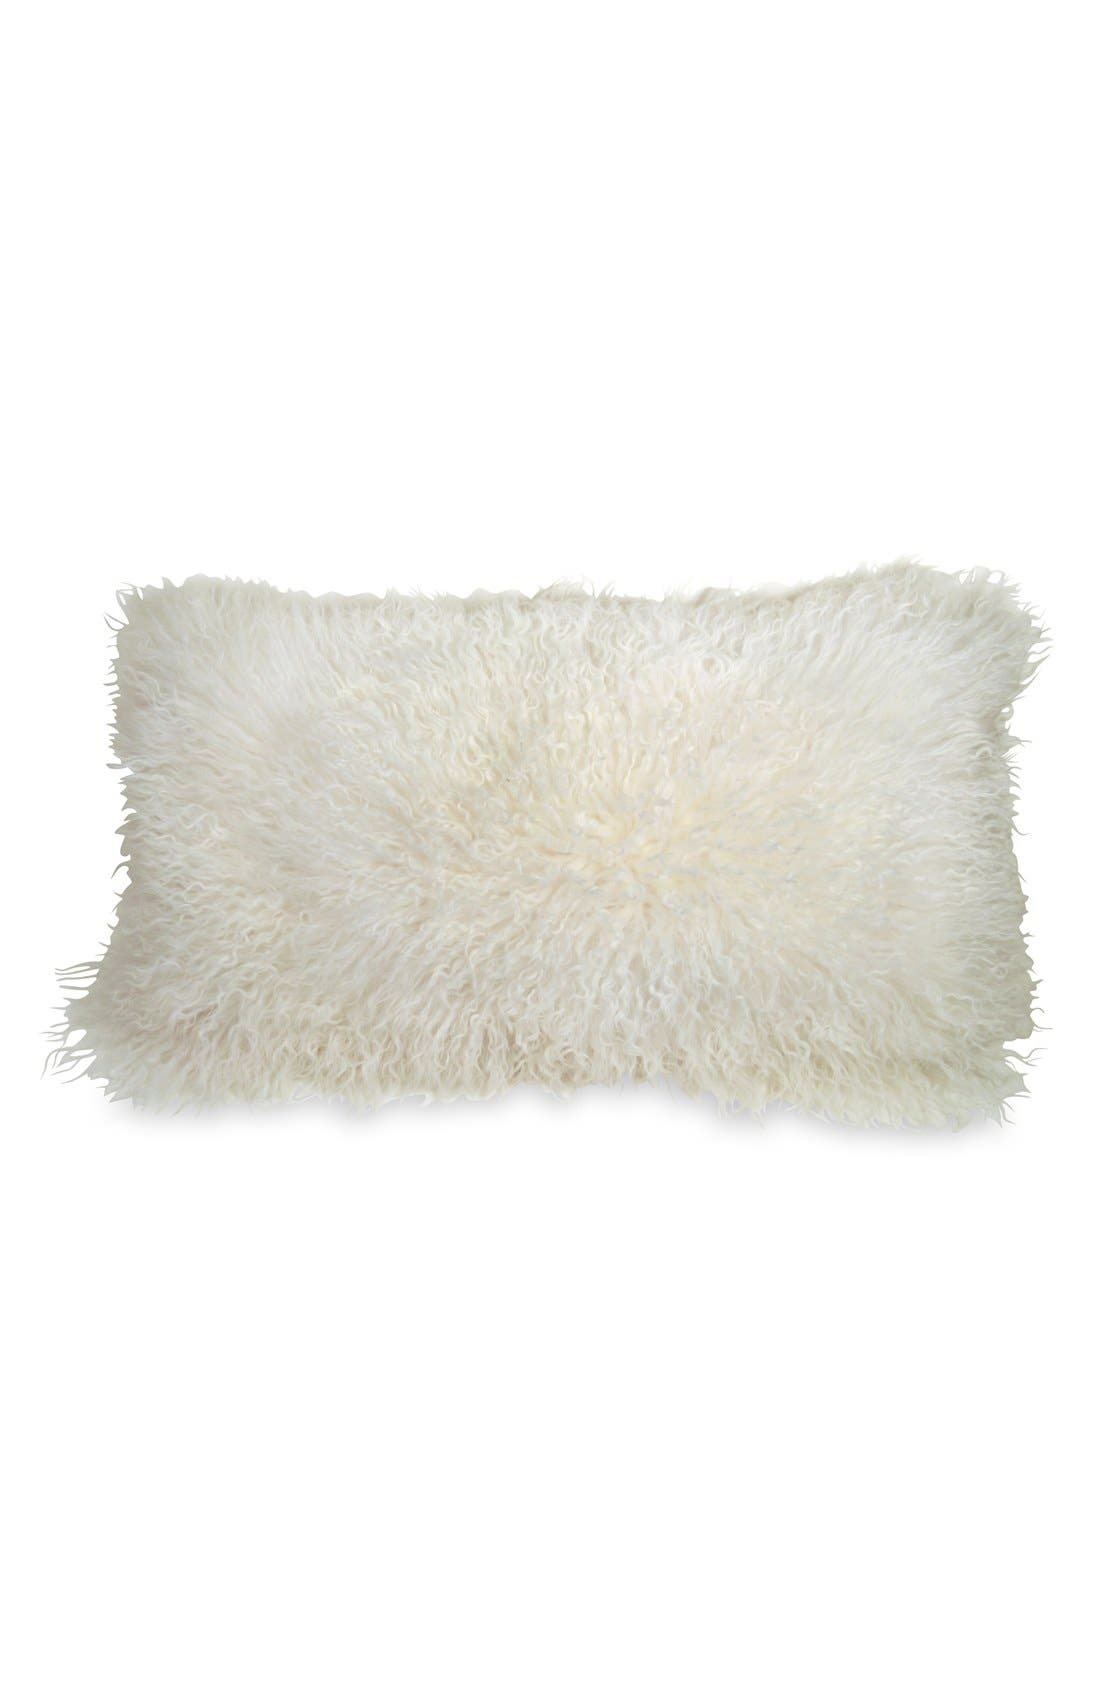 Donna Karan Collection Moonscape Flokati Genuine Sheepskin Pillow,                         Main,                         color, Ivory